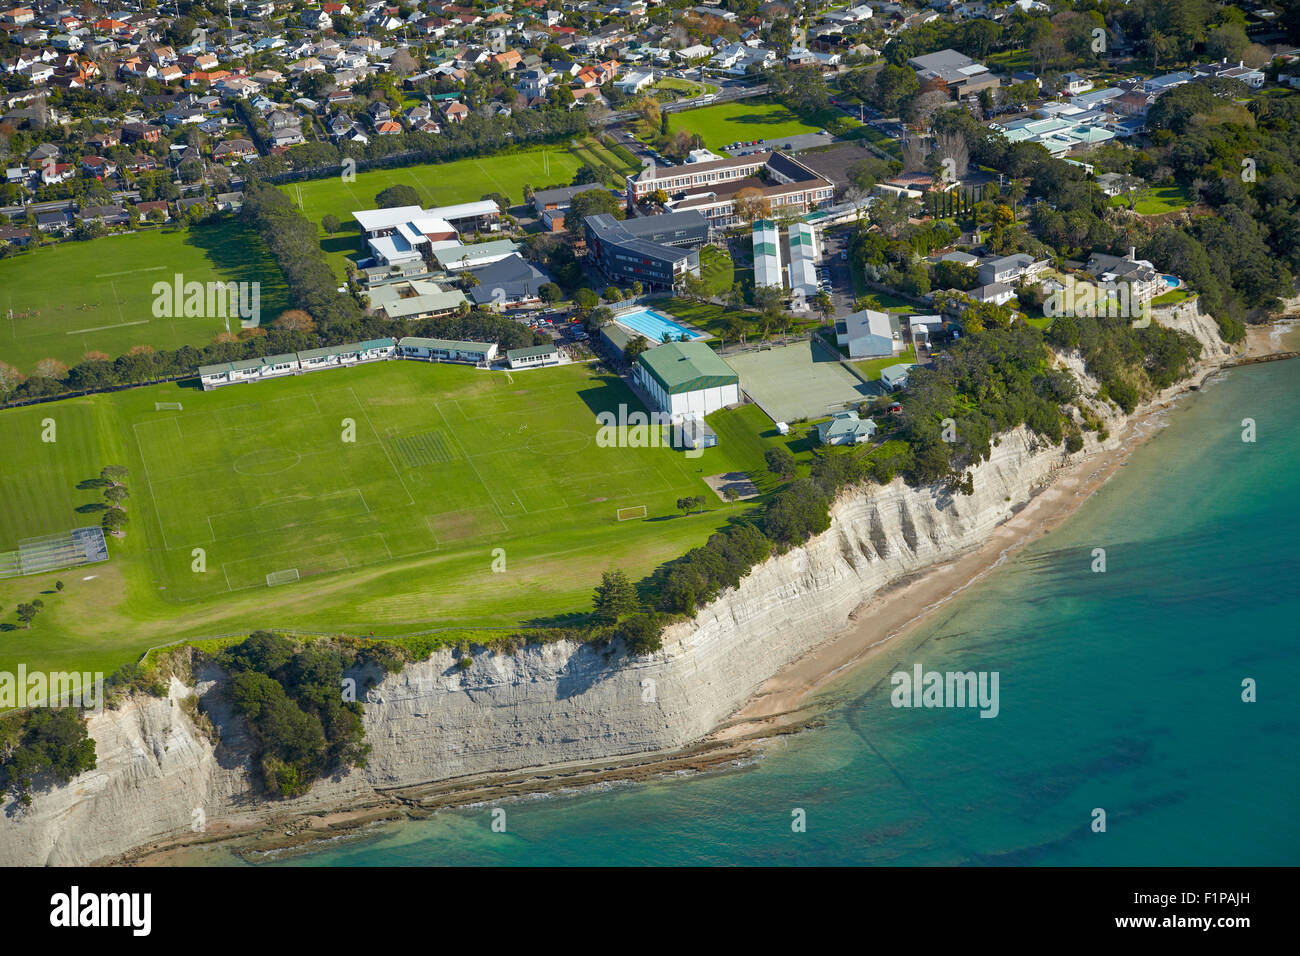 Takapuna Grammar School, Takapuna, Auckland, North Island, New Zealand - aerial - Stock Image